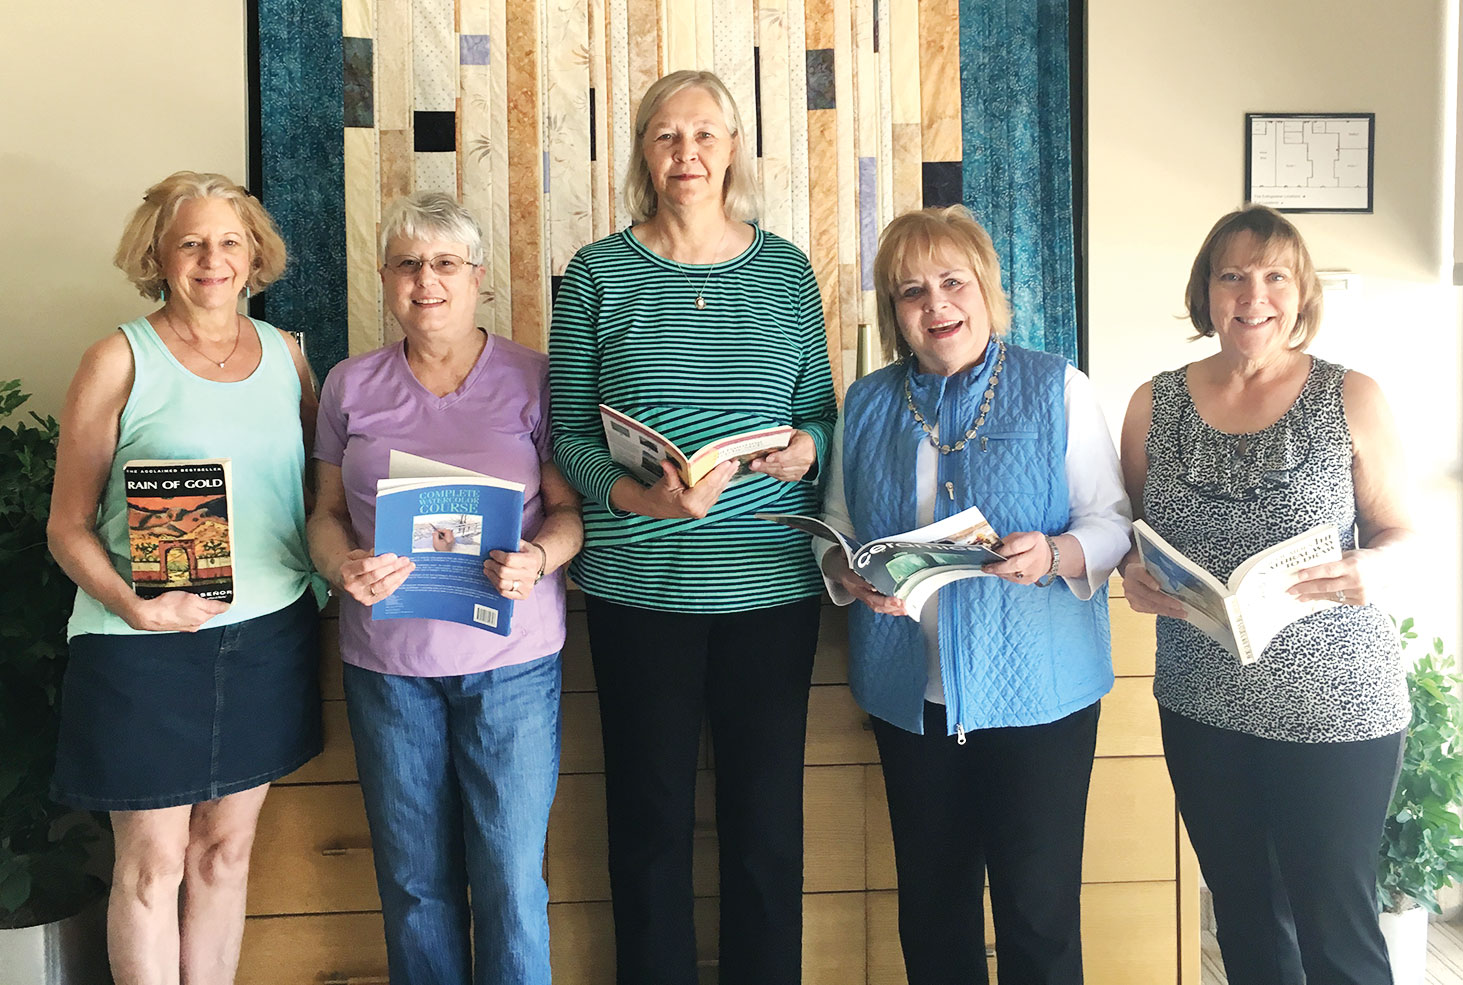 Left to right: Chris Poppen, Nancy Friedman, Karen Leland, Mary Beth Smith and Julie Getchman; not pictured: Melanie Douglas, Wendy Brown, Judy Gottsch, Mary Kindt, Roberta Newman, Beth McGuigan and Bev Bartlett